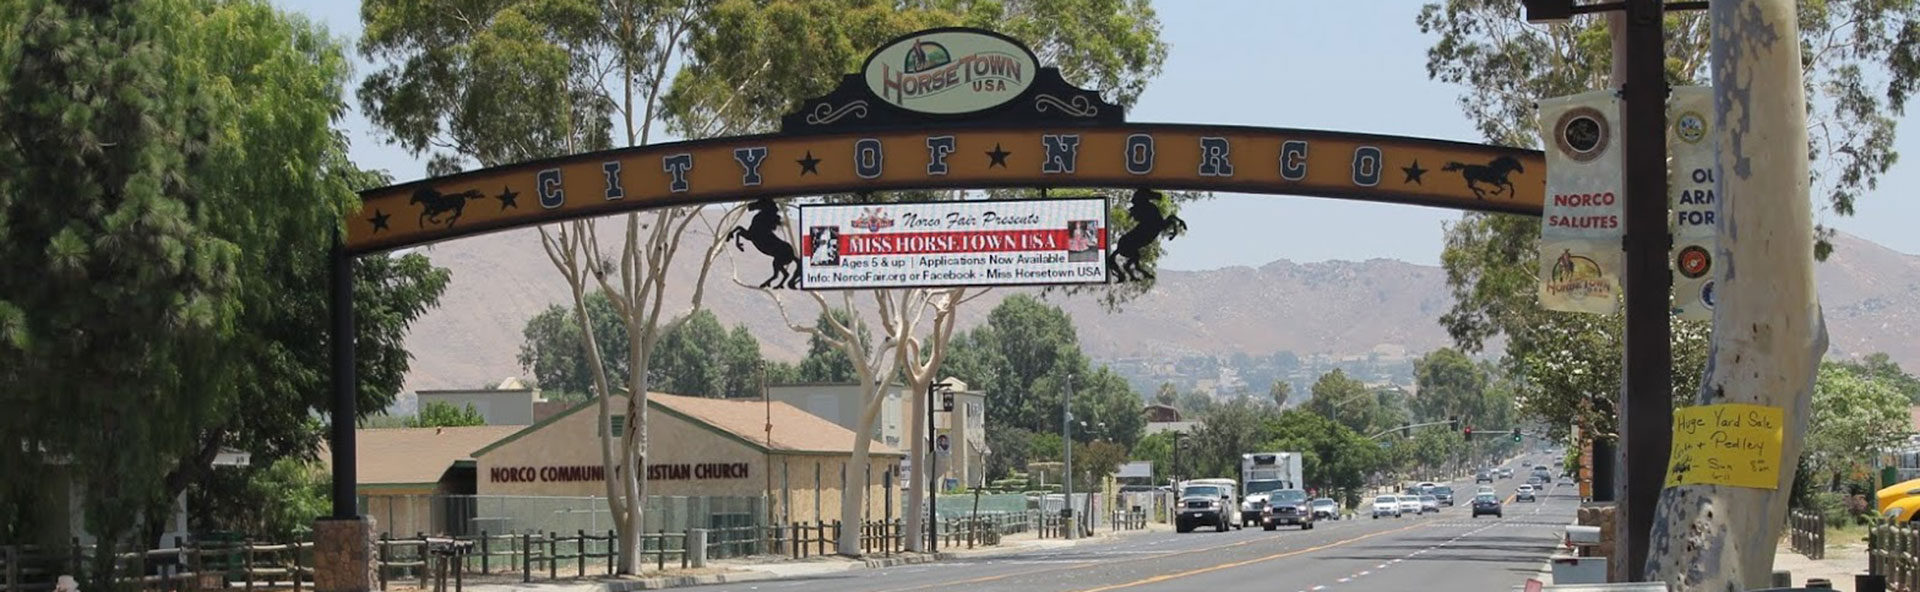 City of Norco sign